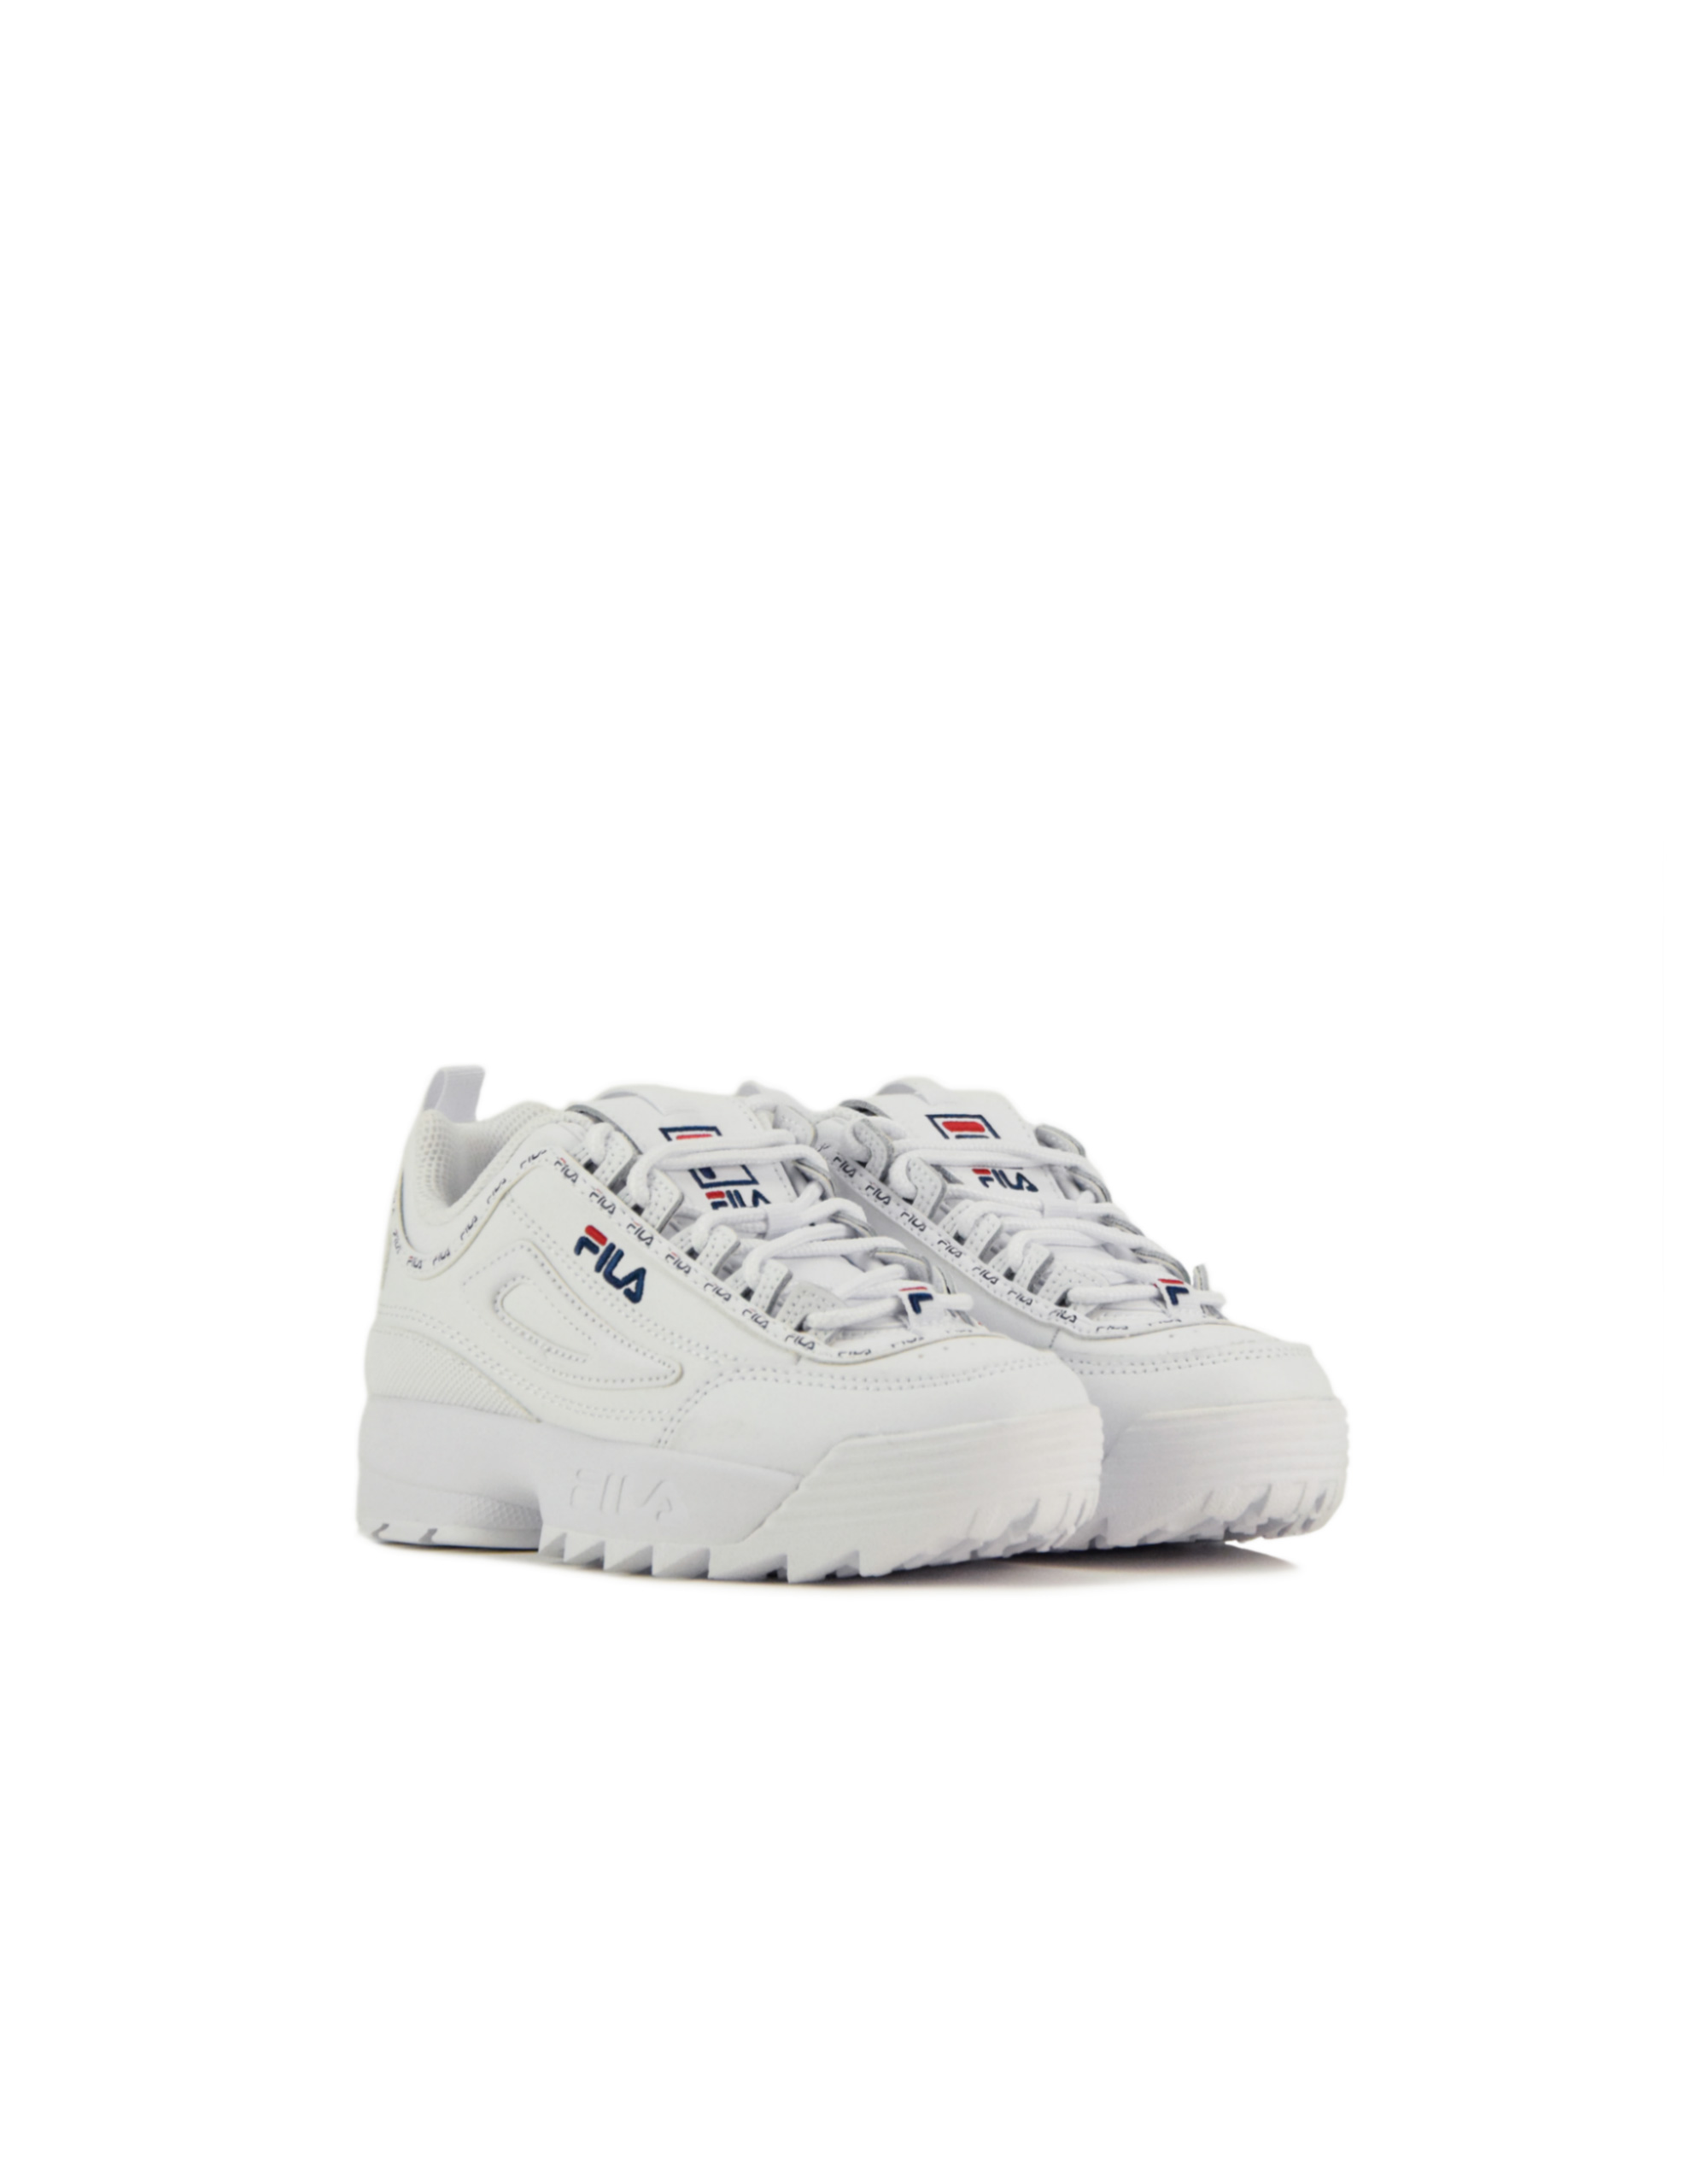 Fila Disruptor II Repeat (3FM00738-125) White